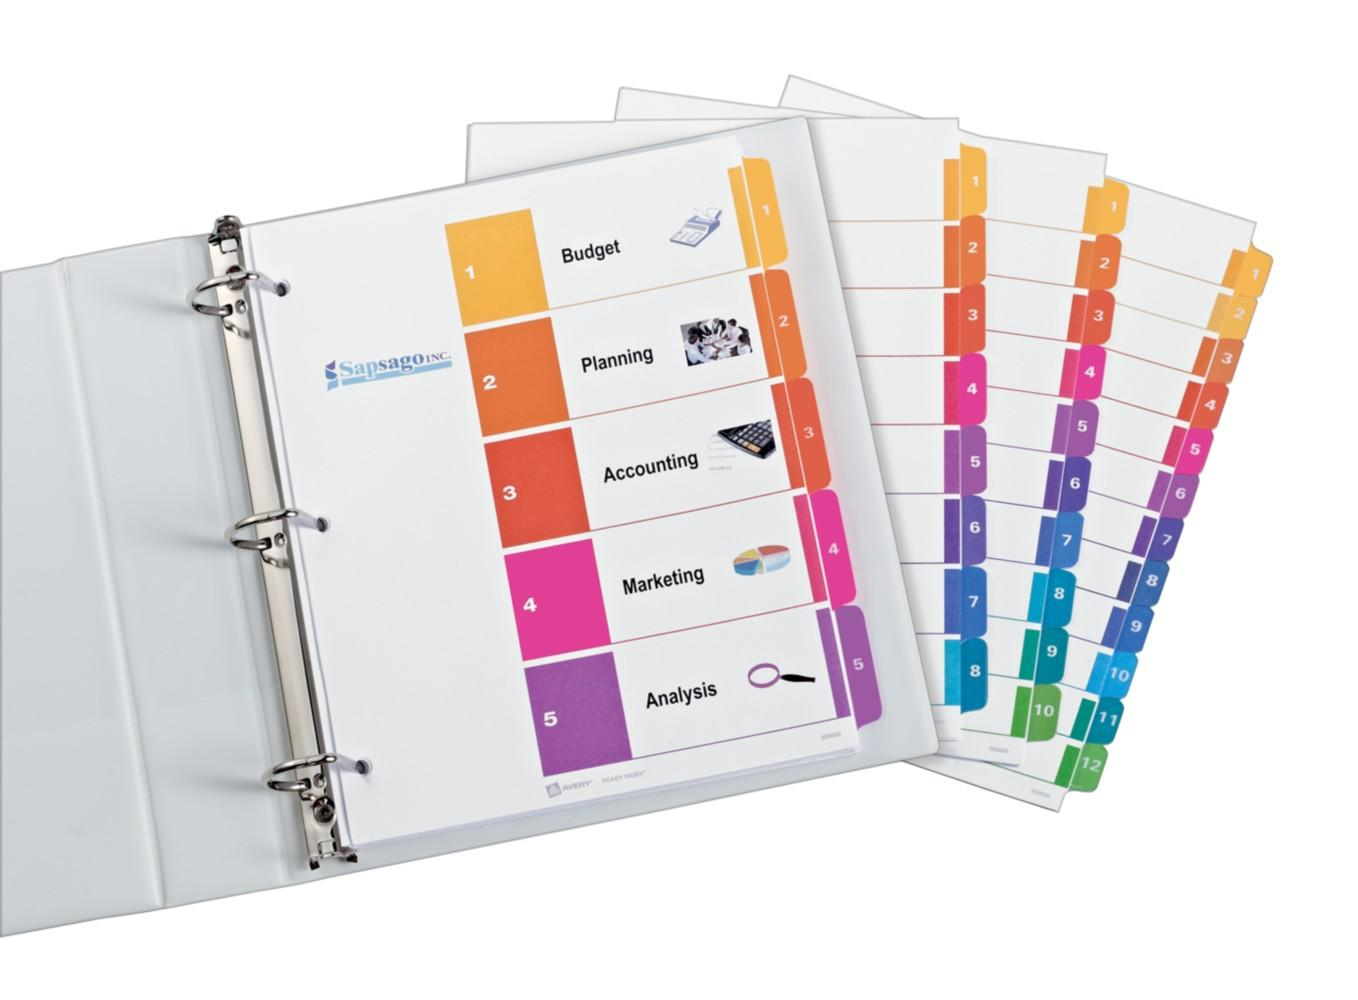 image regarding Printable Binder Tabs named : Avery Mini Tab Dividers, Print Put into practice Crystal clear